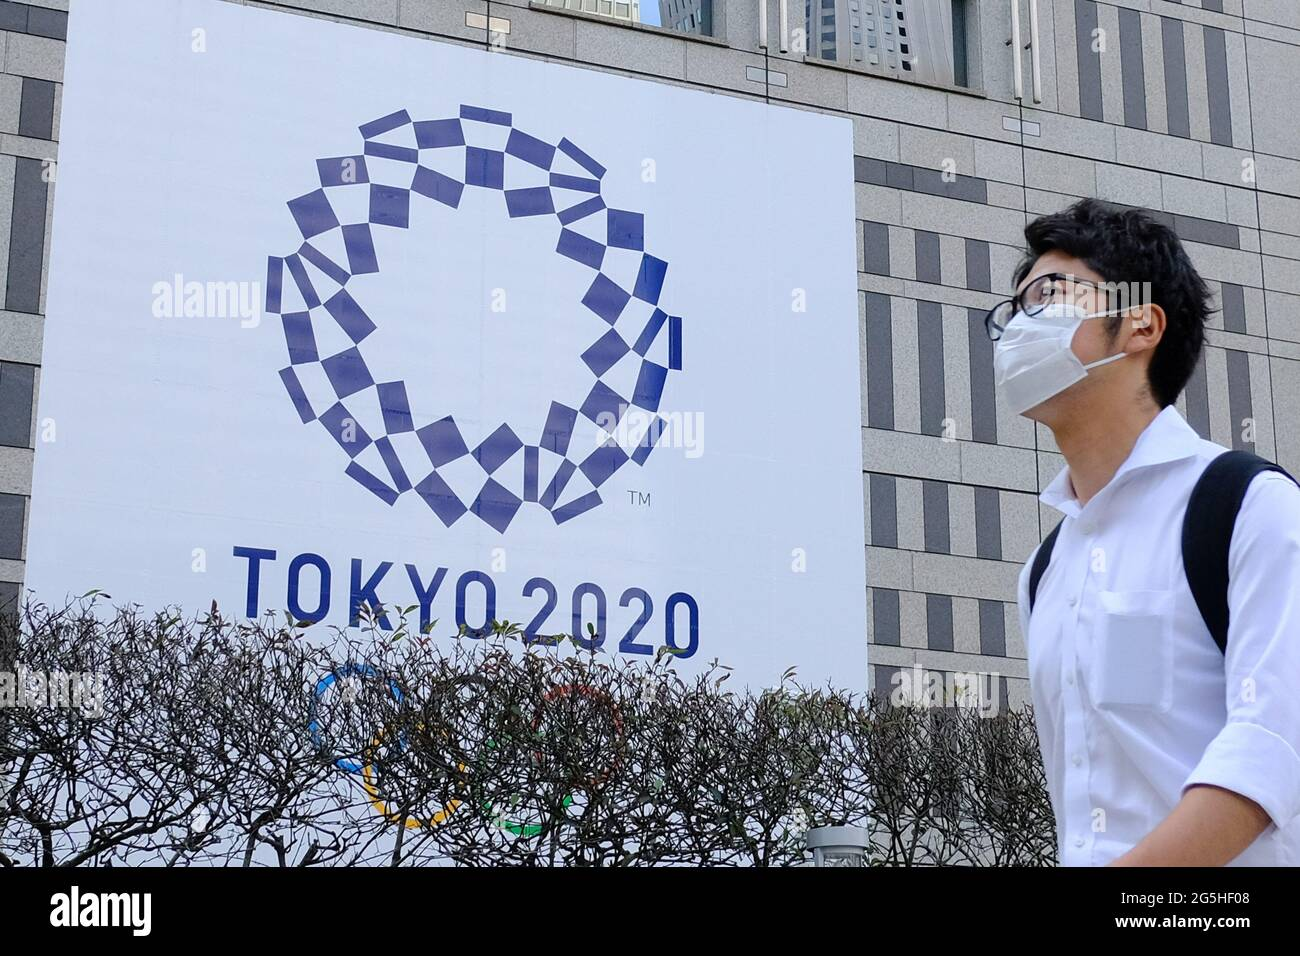 Tokyo, Japan. 25th June, 2021. A man wearing a face mask as a preventive measure against the spread of coronavirus walks past a banner for the upcoming Tokyo 2020 Olympics in front of the Tokyo Metro Government building. Credit: SOPA Images Limited/Alamy Live News Stock Photo